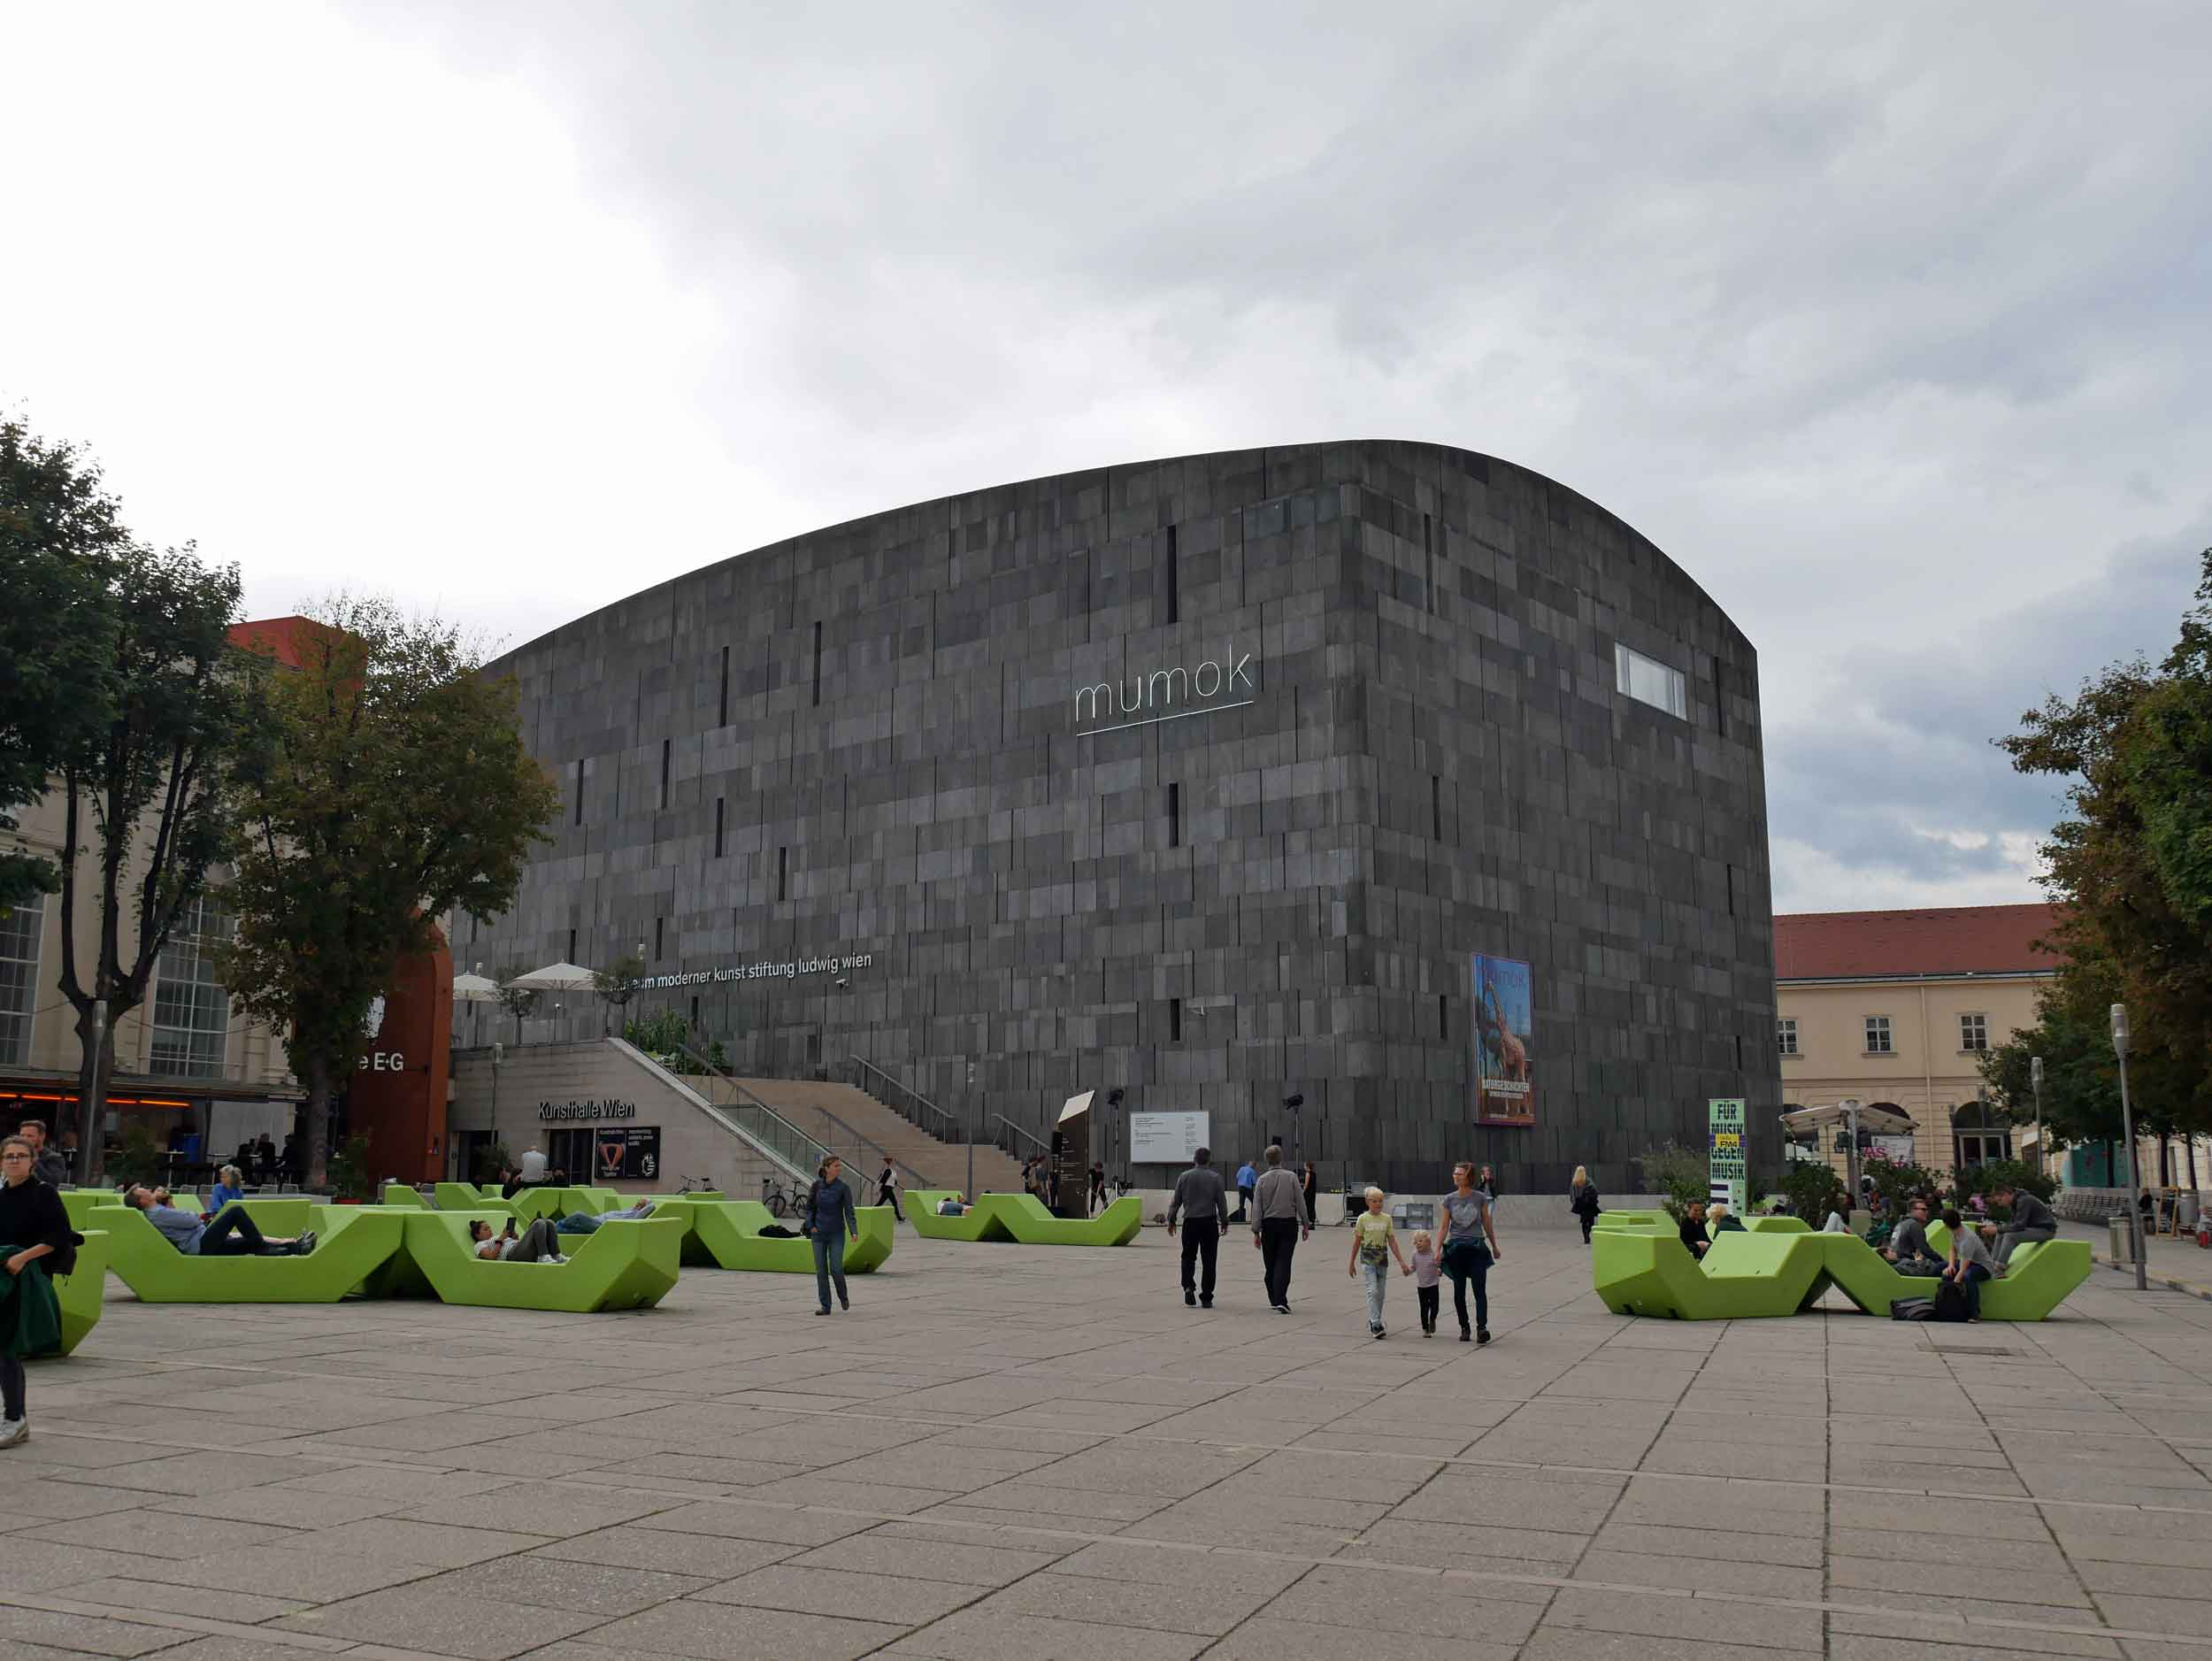 Mumok is a cutting-edge modern art museum in the city's Museumsquartier.